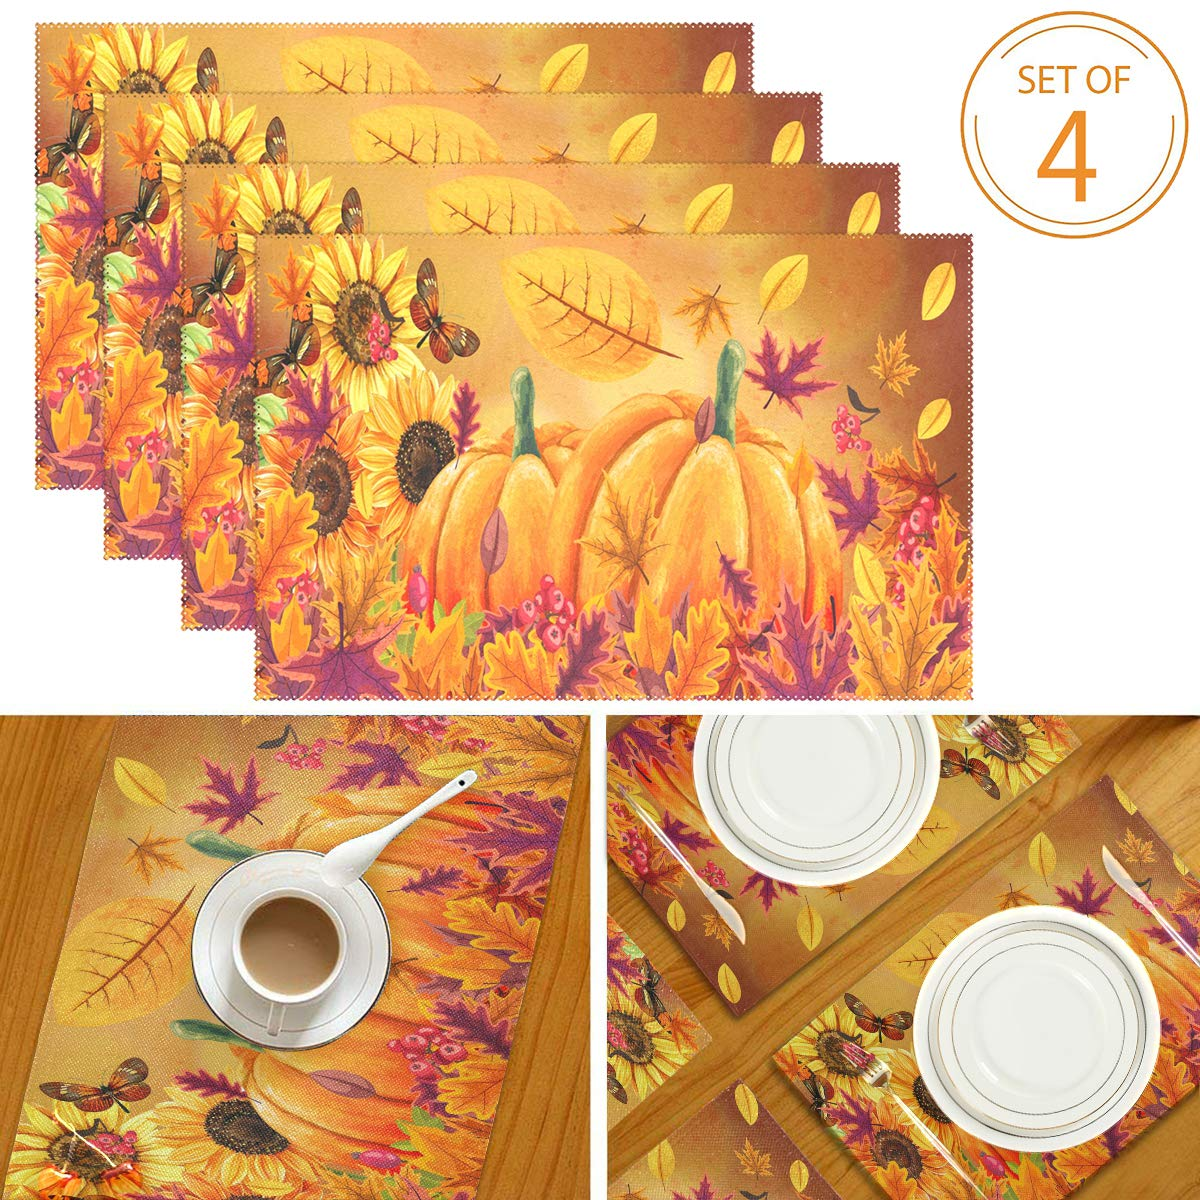 "Wamika Sunflowers Pumpkins Fall Placemats Butterfly Maple Leaf Autumn Place Mats Non-Slip Washable Heat Resistant Table Mats for Kitchen Dining Home Decor 12"" X 18"" Set of 4"